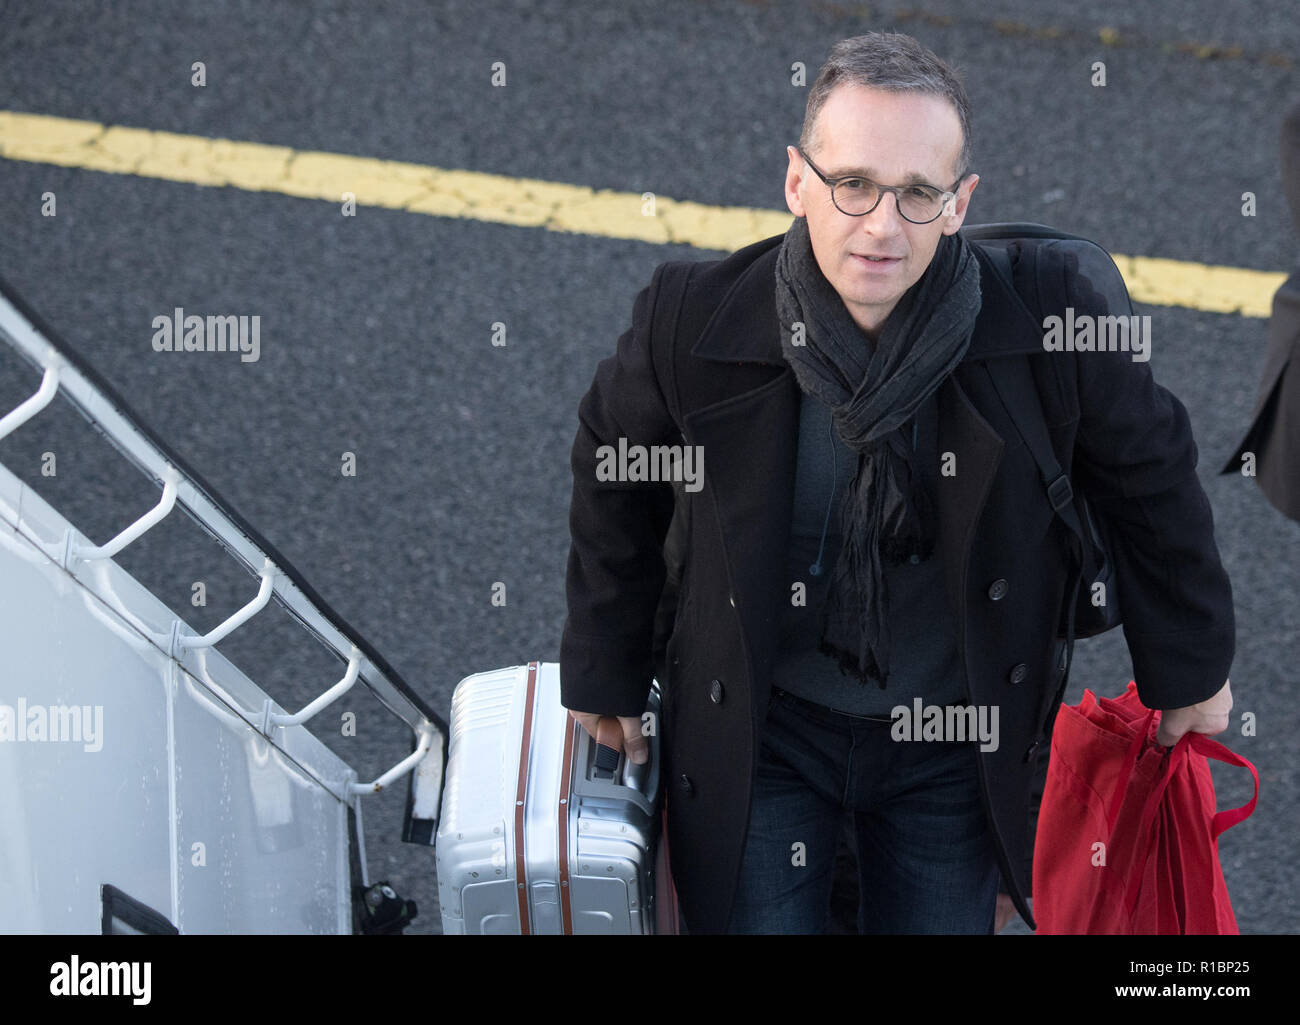 11 November 2018, Berlin: Foreign Minister Heiko Maas (SPD) climbs into a Bundeswehr A340 to fly to China for his inaugural visit. According to the Foreign Office, meetings with other representatives of the Chinese leadership are planned in addition to talks with his counterpart Wang Yi. This will also involve a strategic dialogue with China. Photo: Ralf Hirschberger/dpa - Stock Image